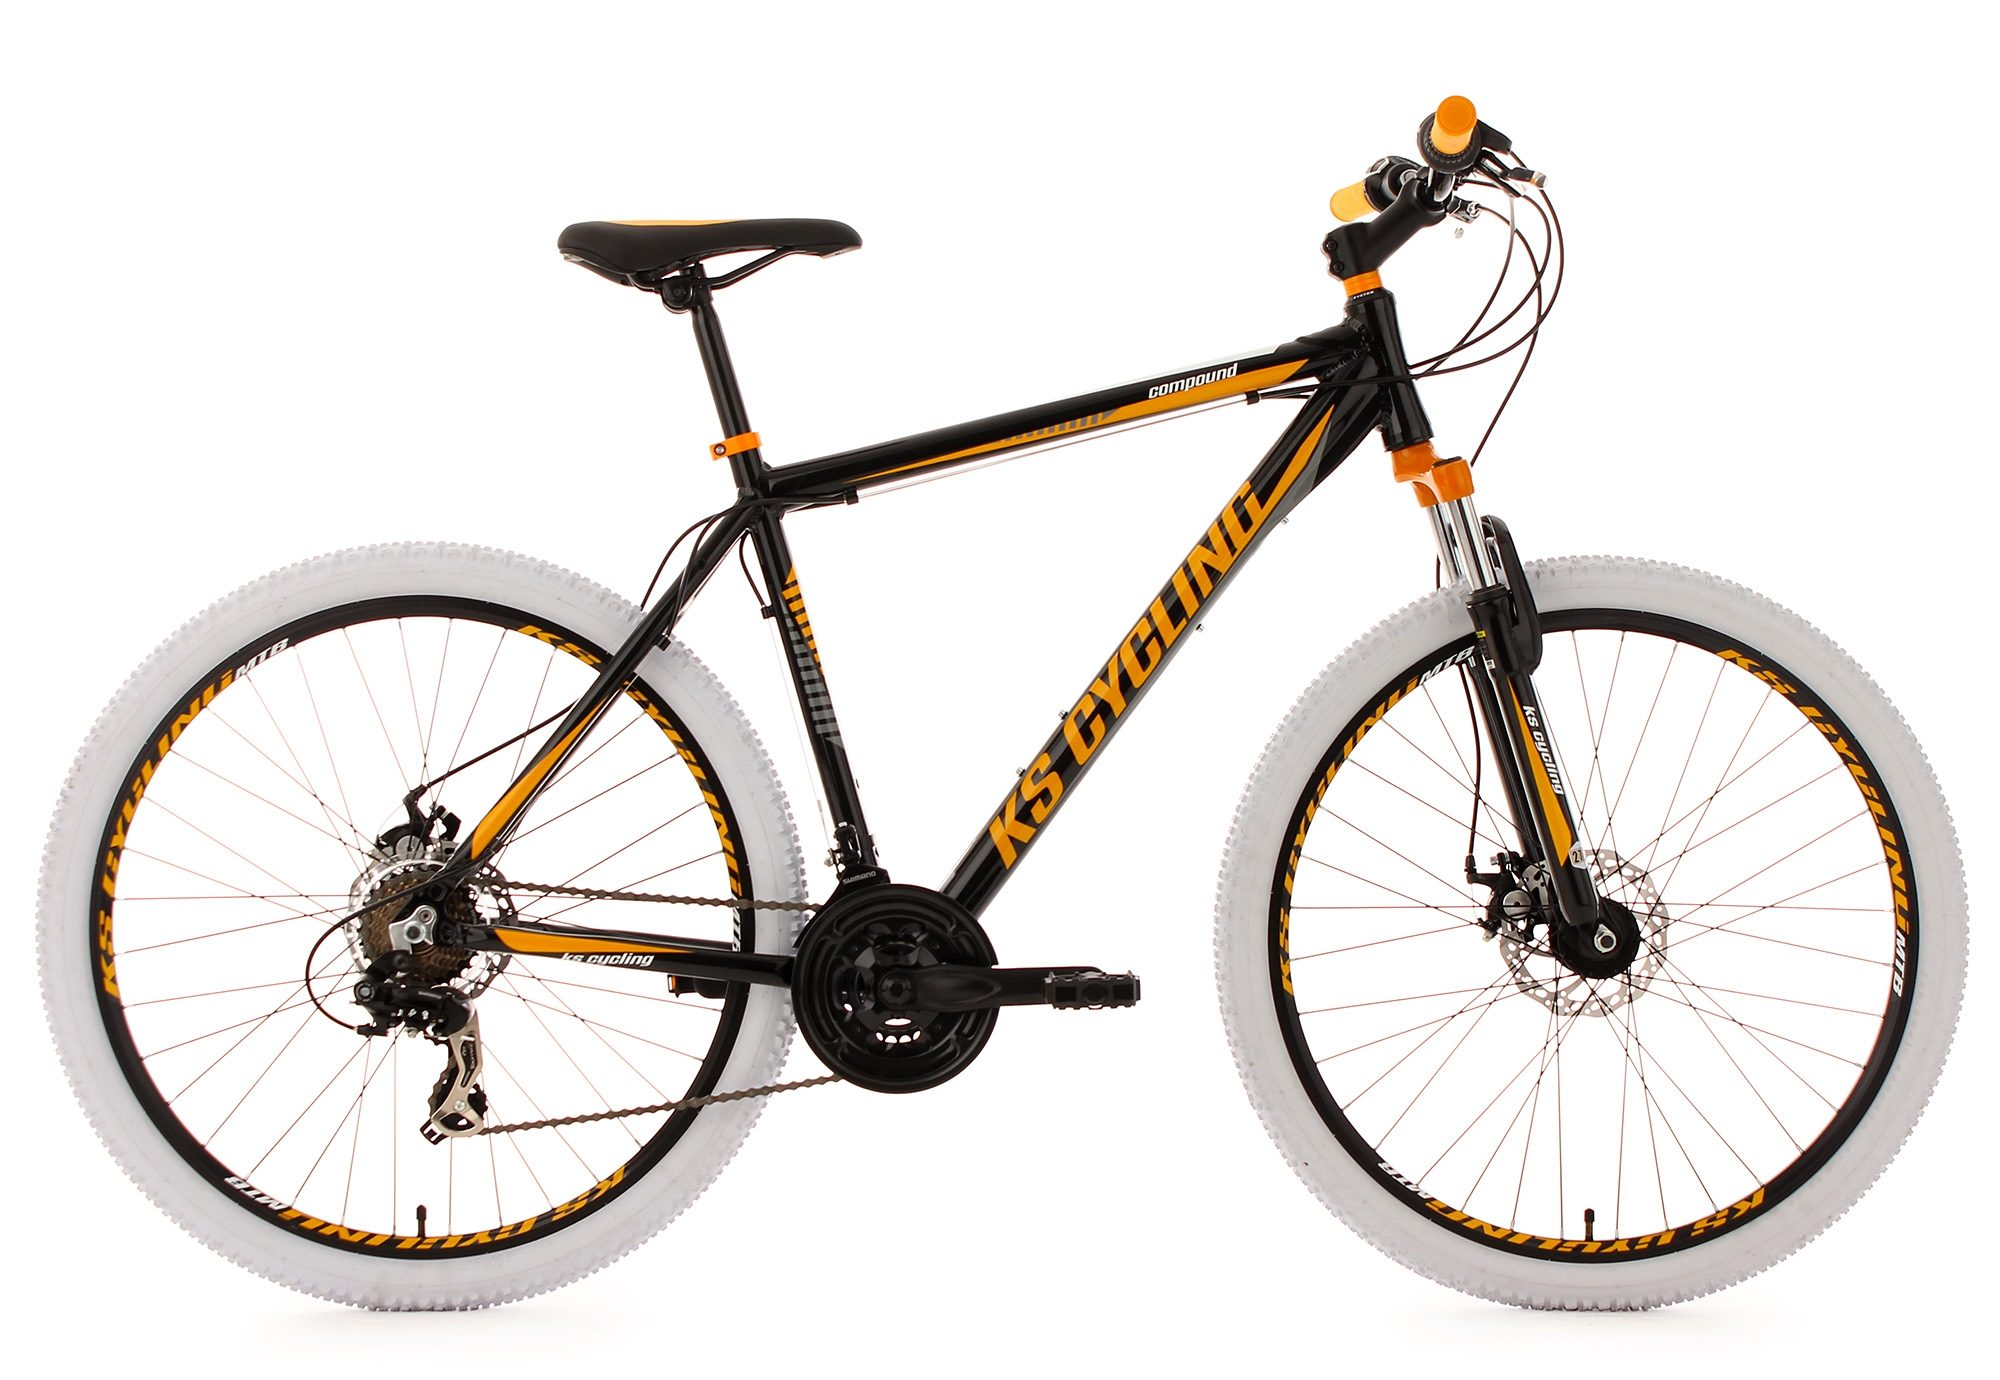 KS Cycling Hardtail-Mountainbike, 27,5 Zoll, 21 Gang-Kettenschaltung, schwarz, »Compound«